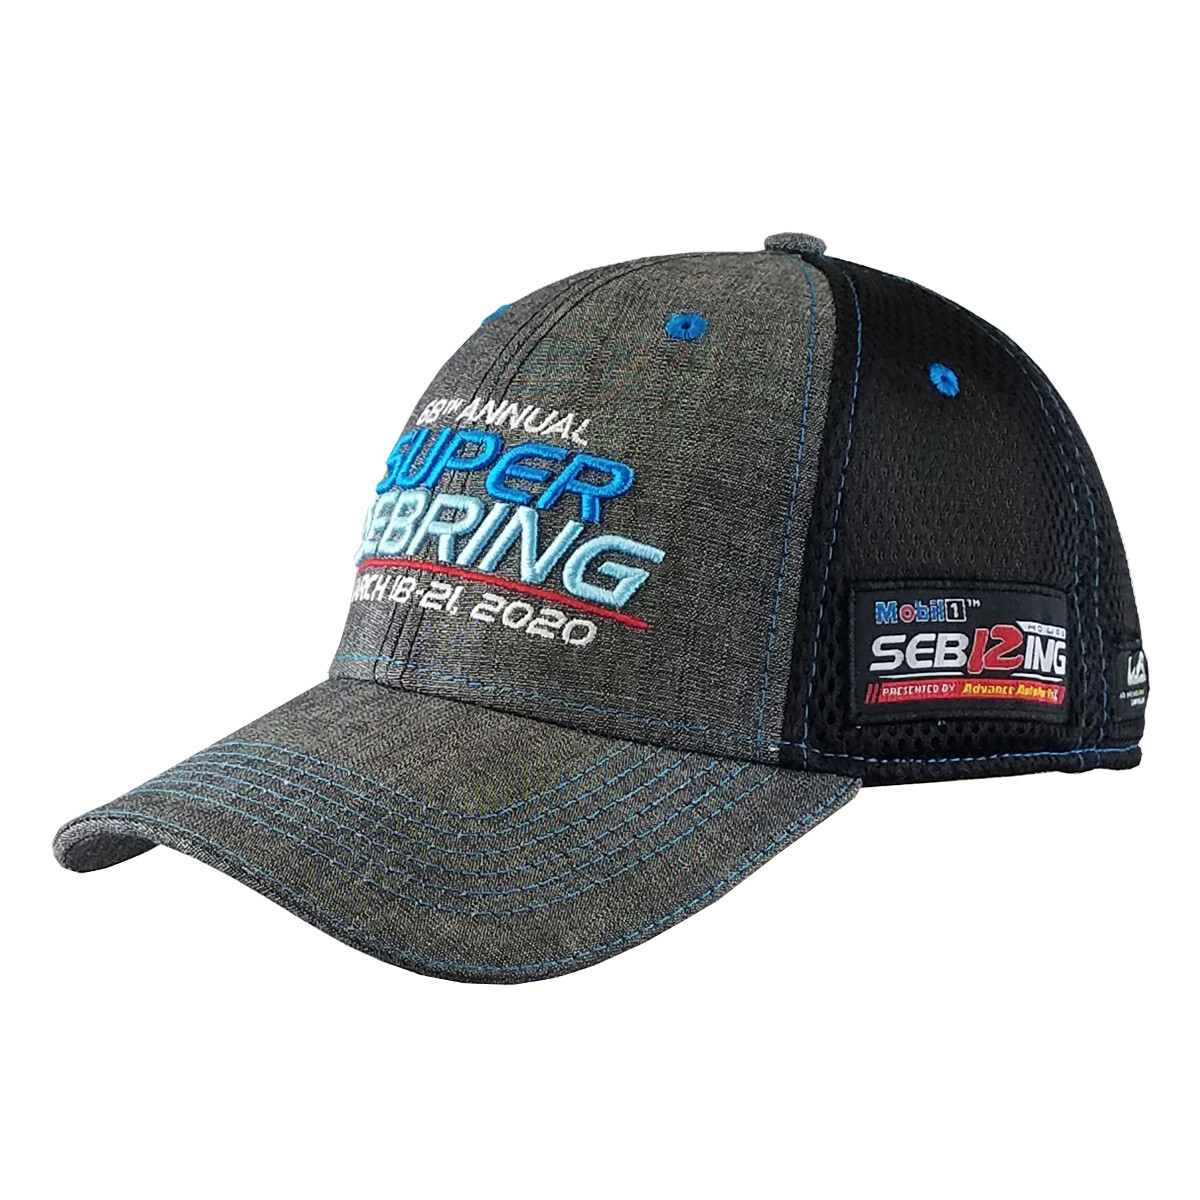 2020 SuperSebring Hat-Chambray/Black